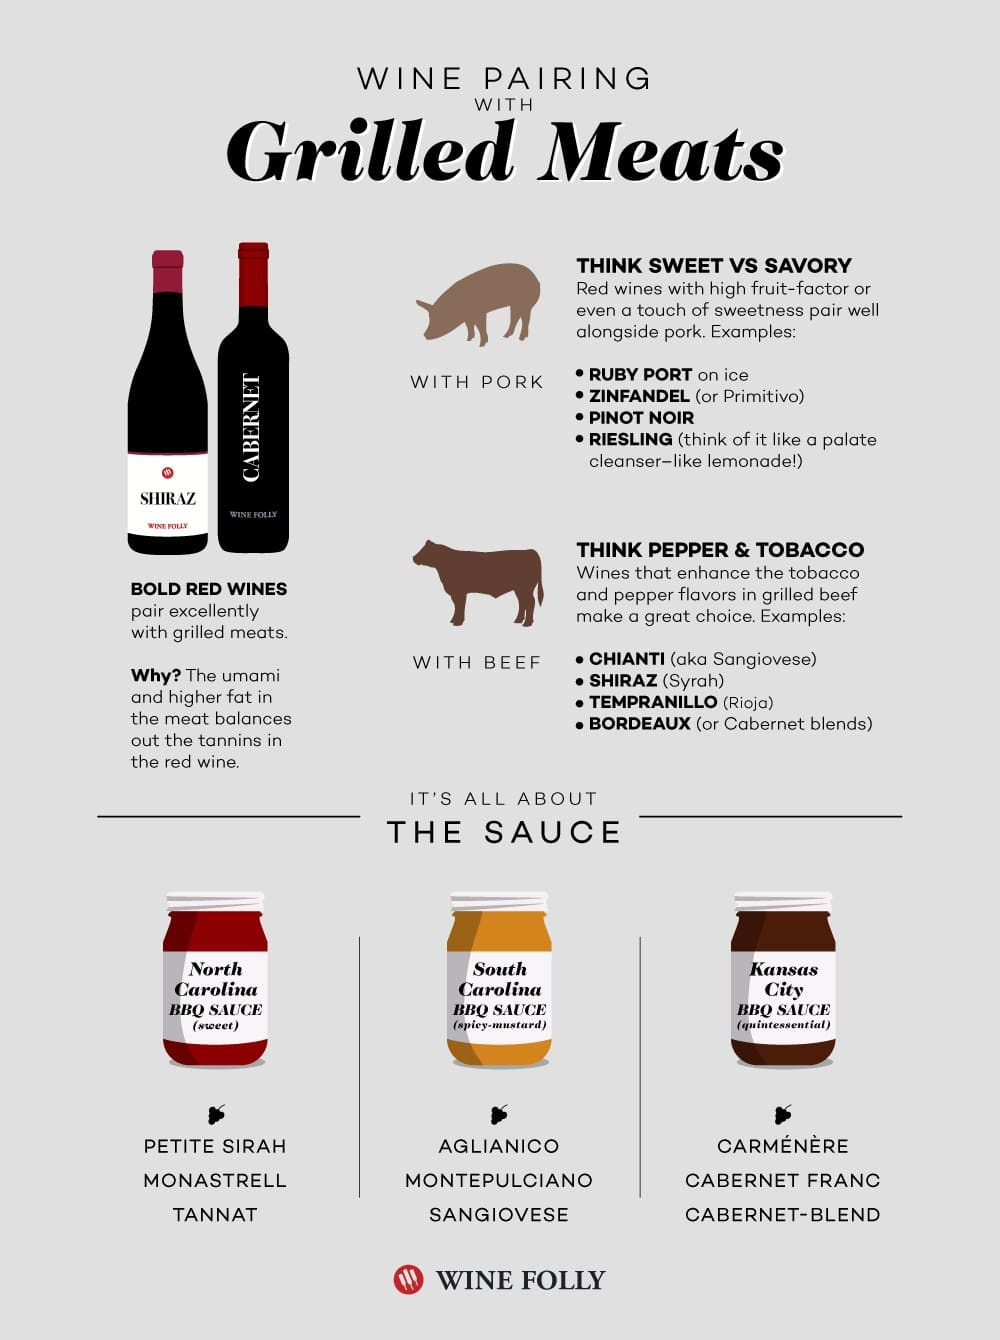 barbecue-pork-beef-wine-pairing-wine-folly